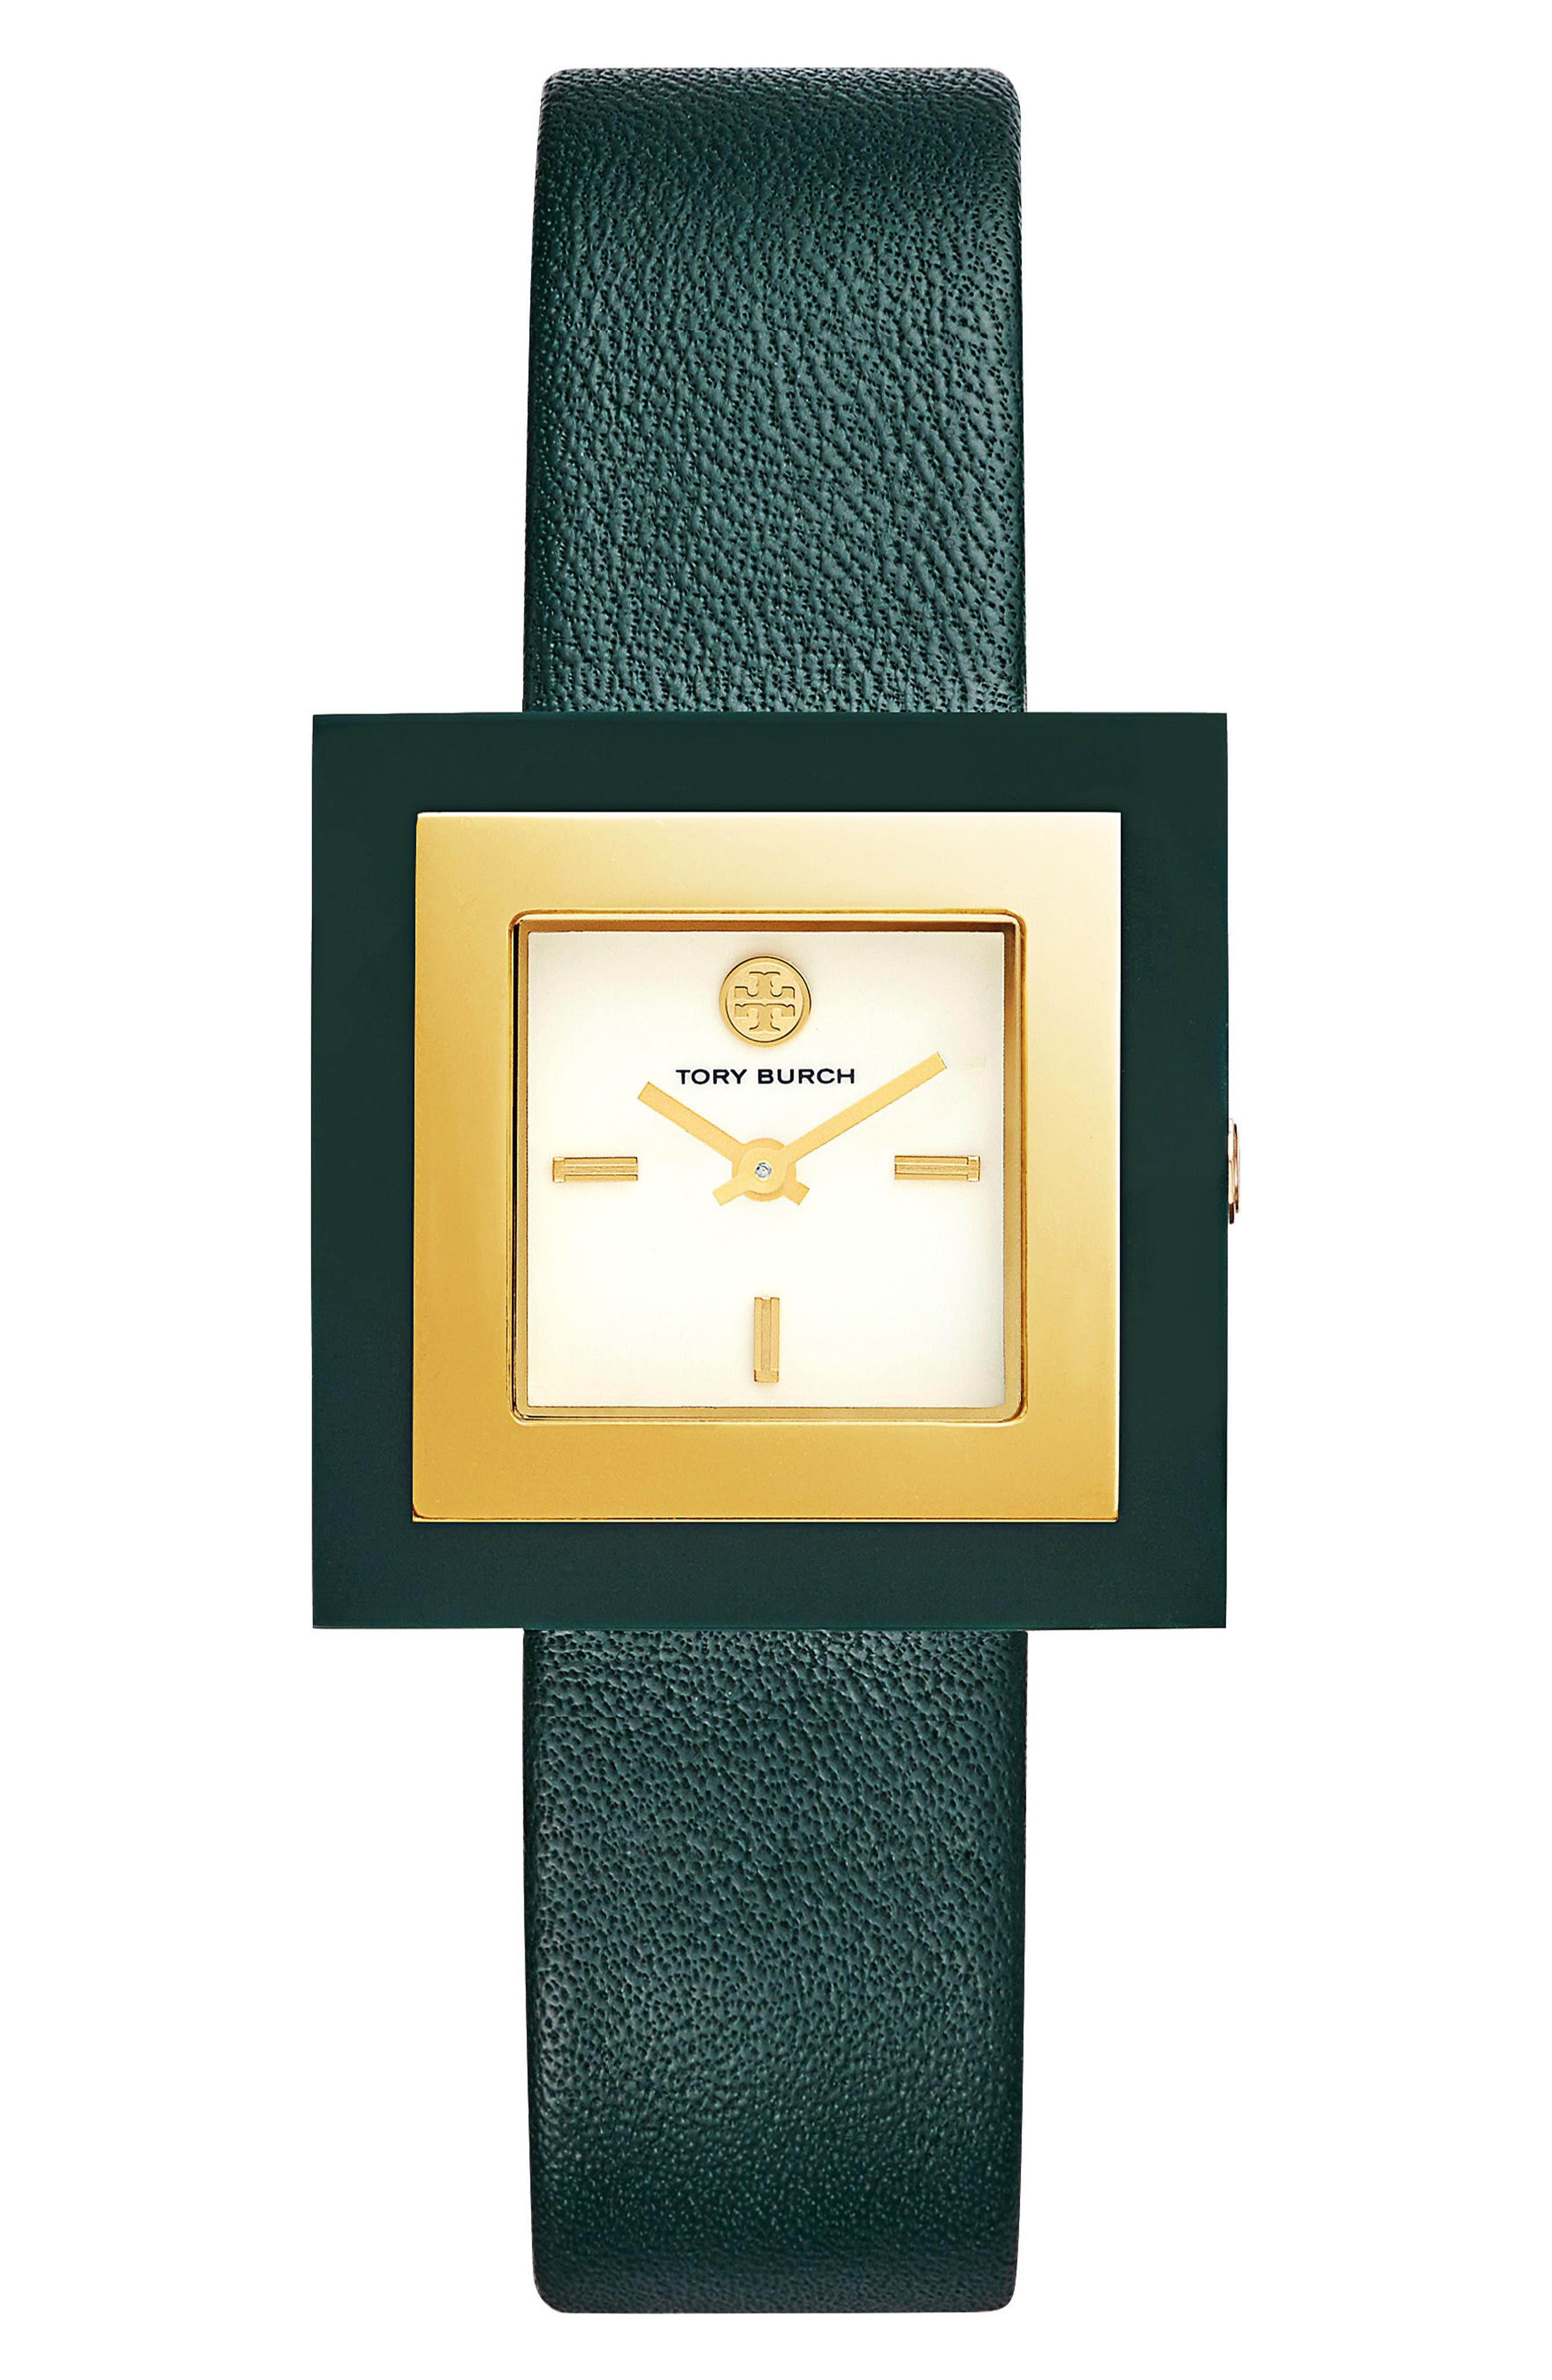 Tory Burch Sedgwick Square Leather Strap Watch, 33mm x 33mm